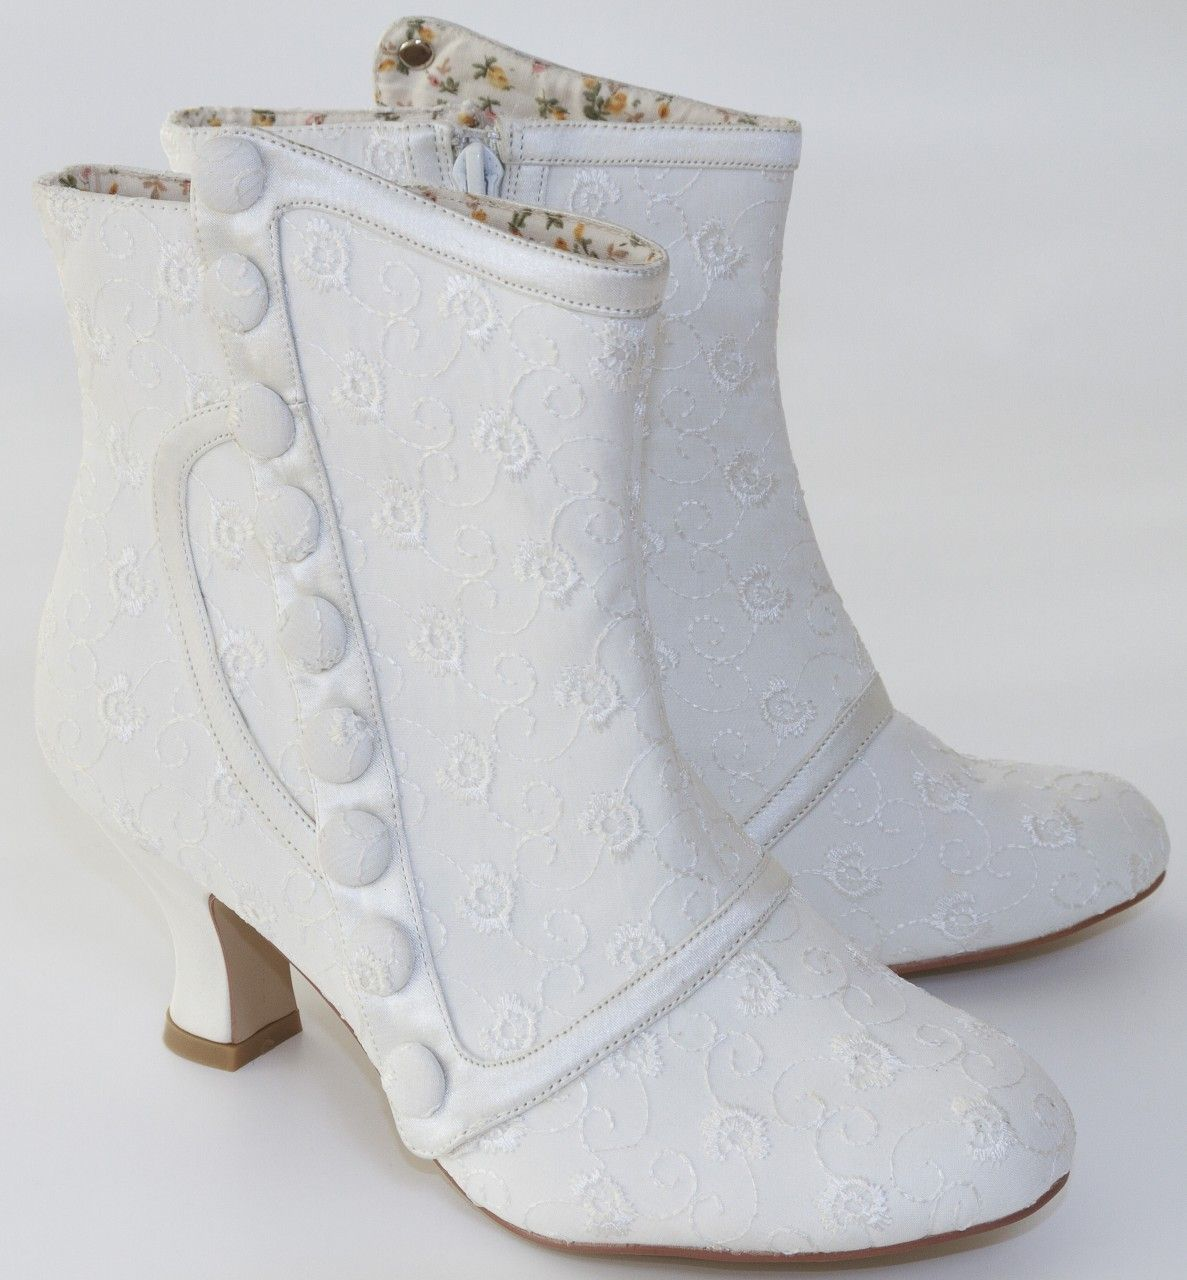 Vintage Style Wedding Boots Nelly By Perfect Bridal Shoes Ivory At The Boutique